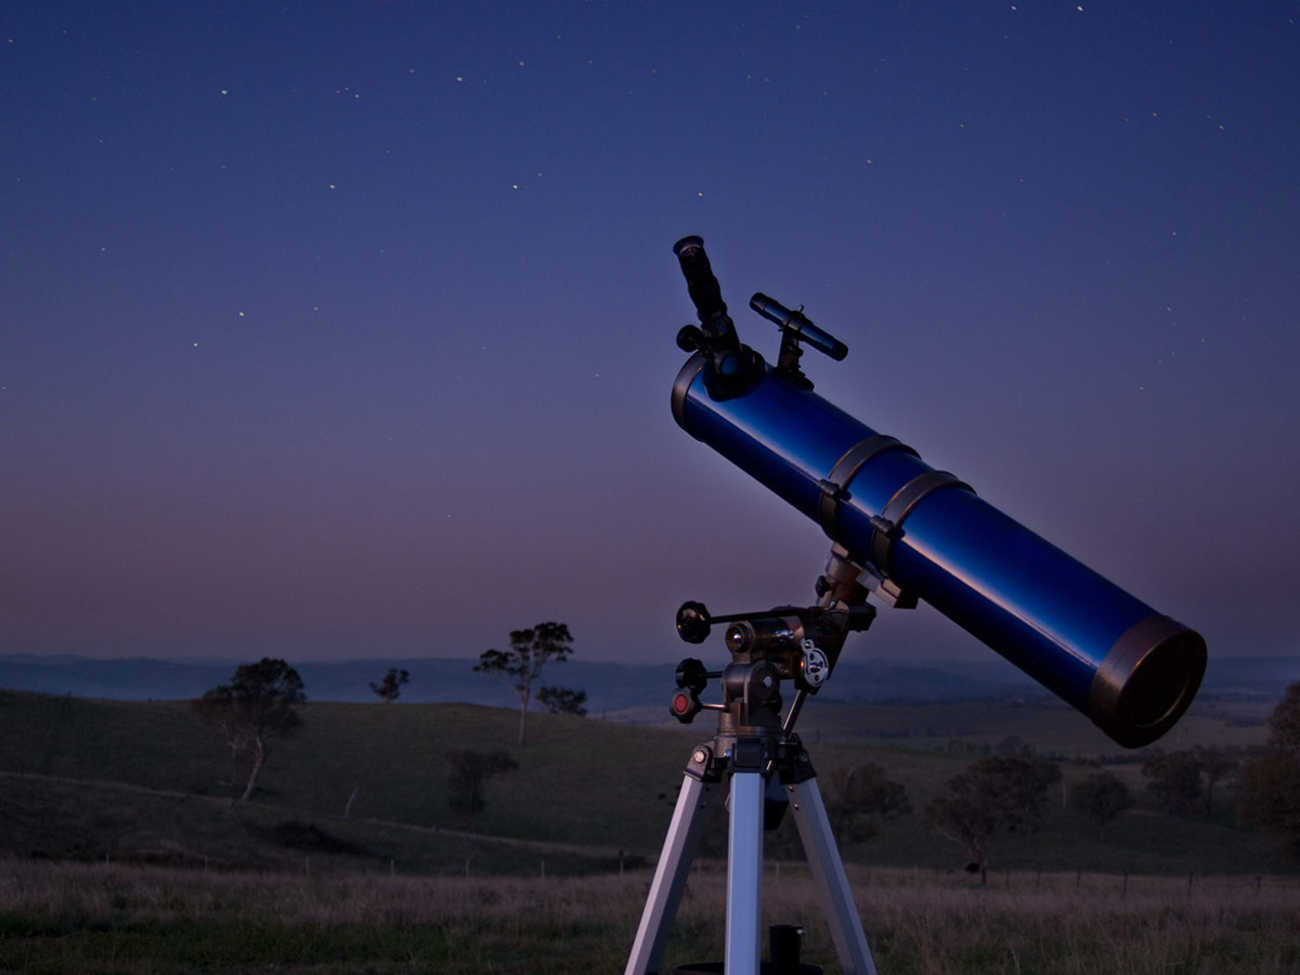 A telescope points to the night sky.